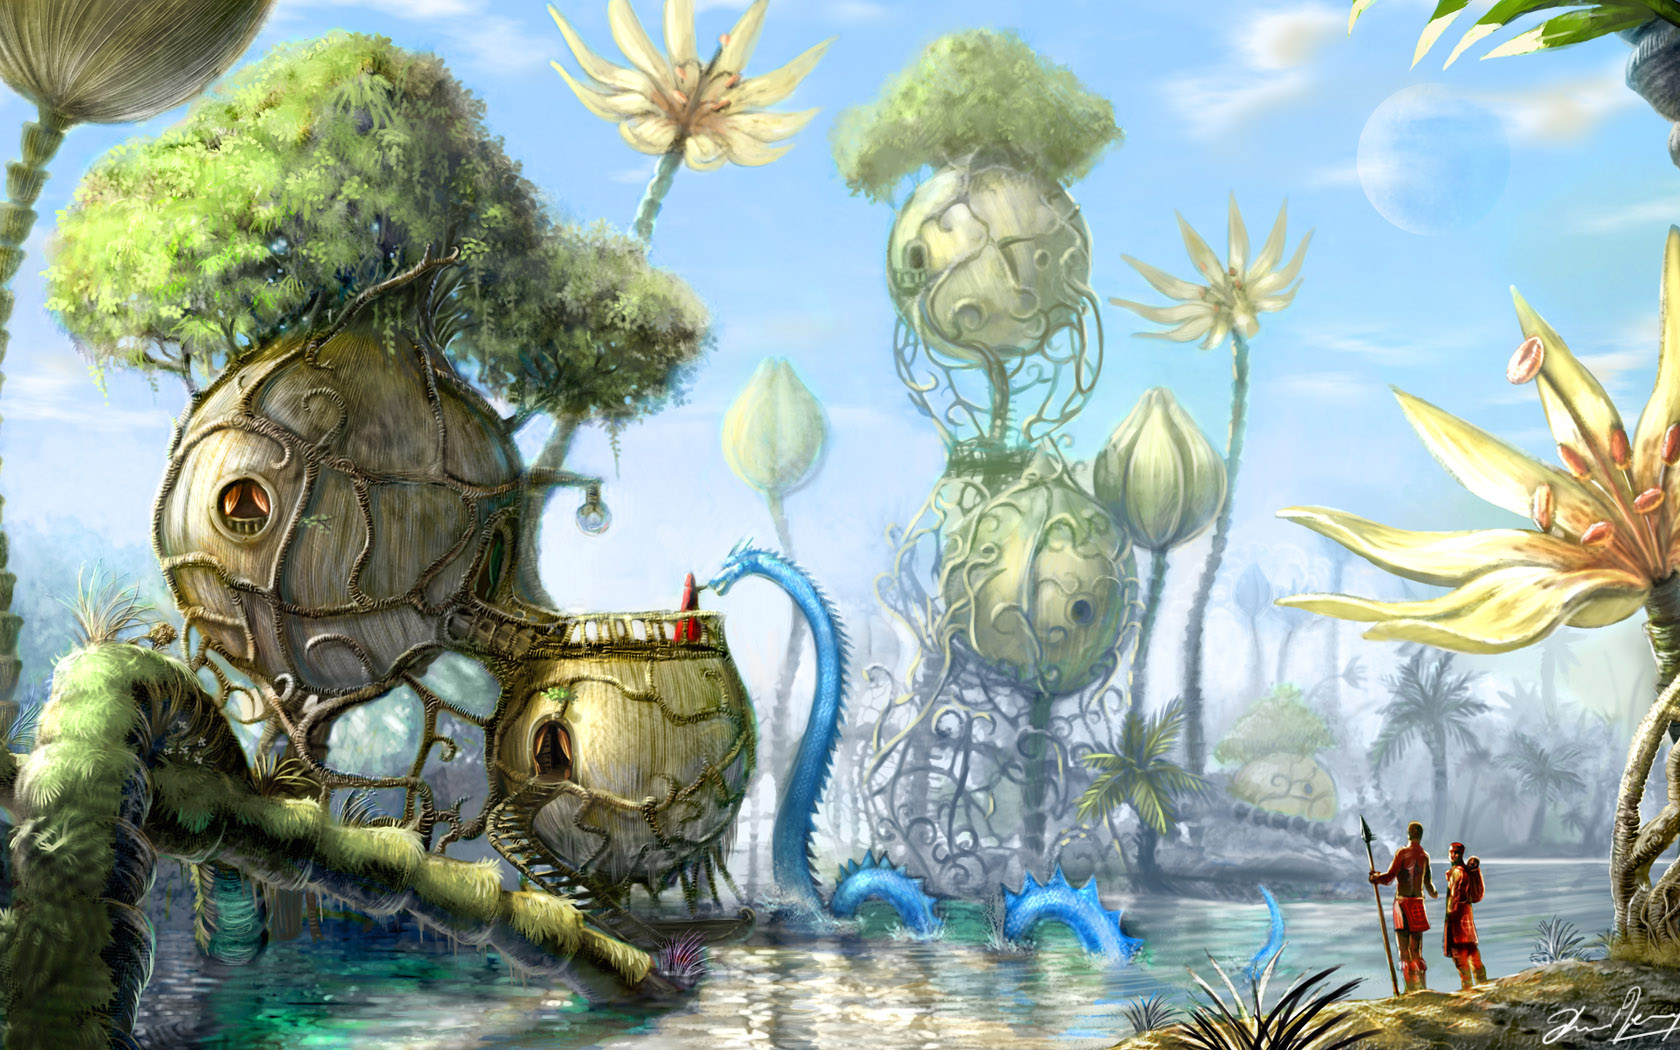 Wallpapers david revoy - Fantasy land wallpaper ...